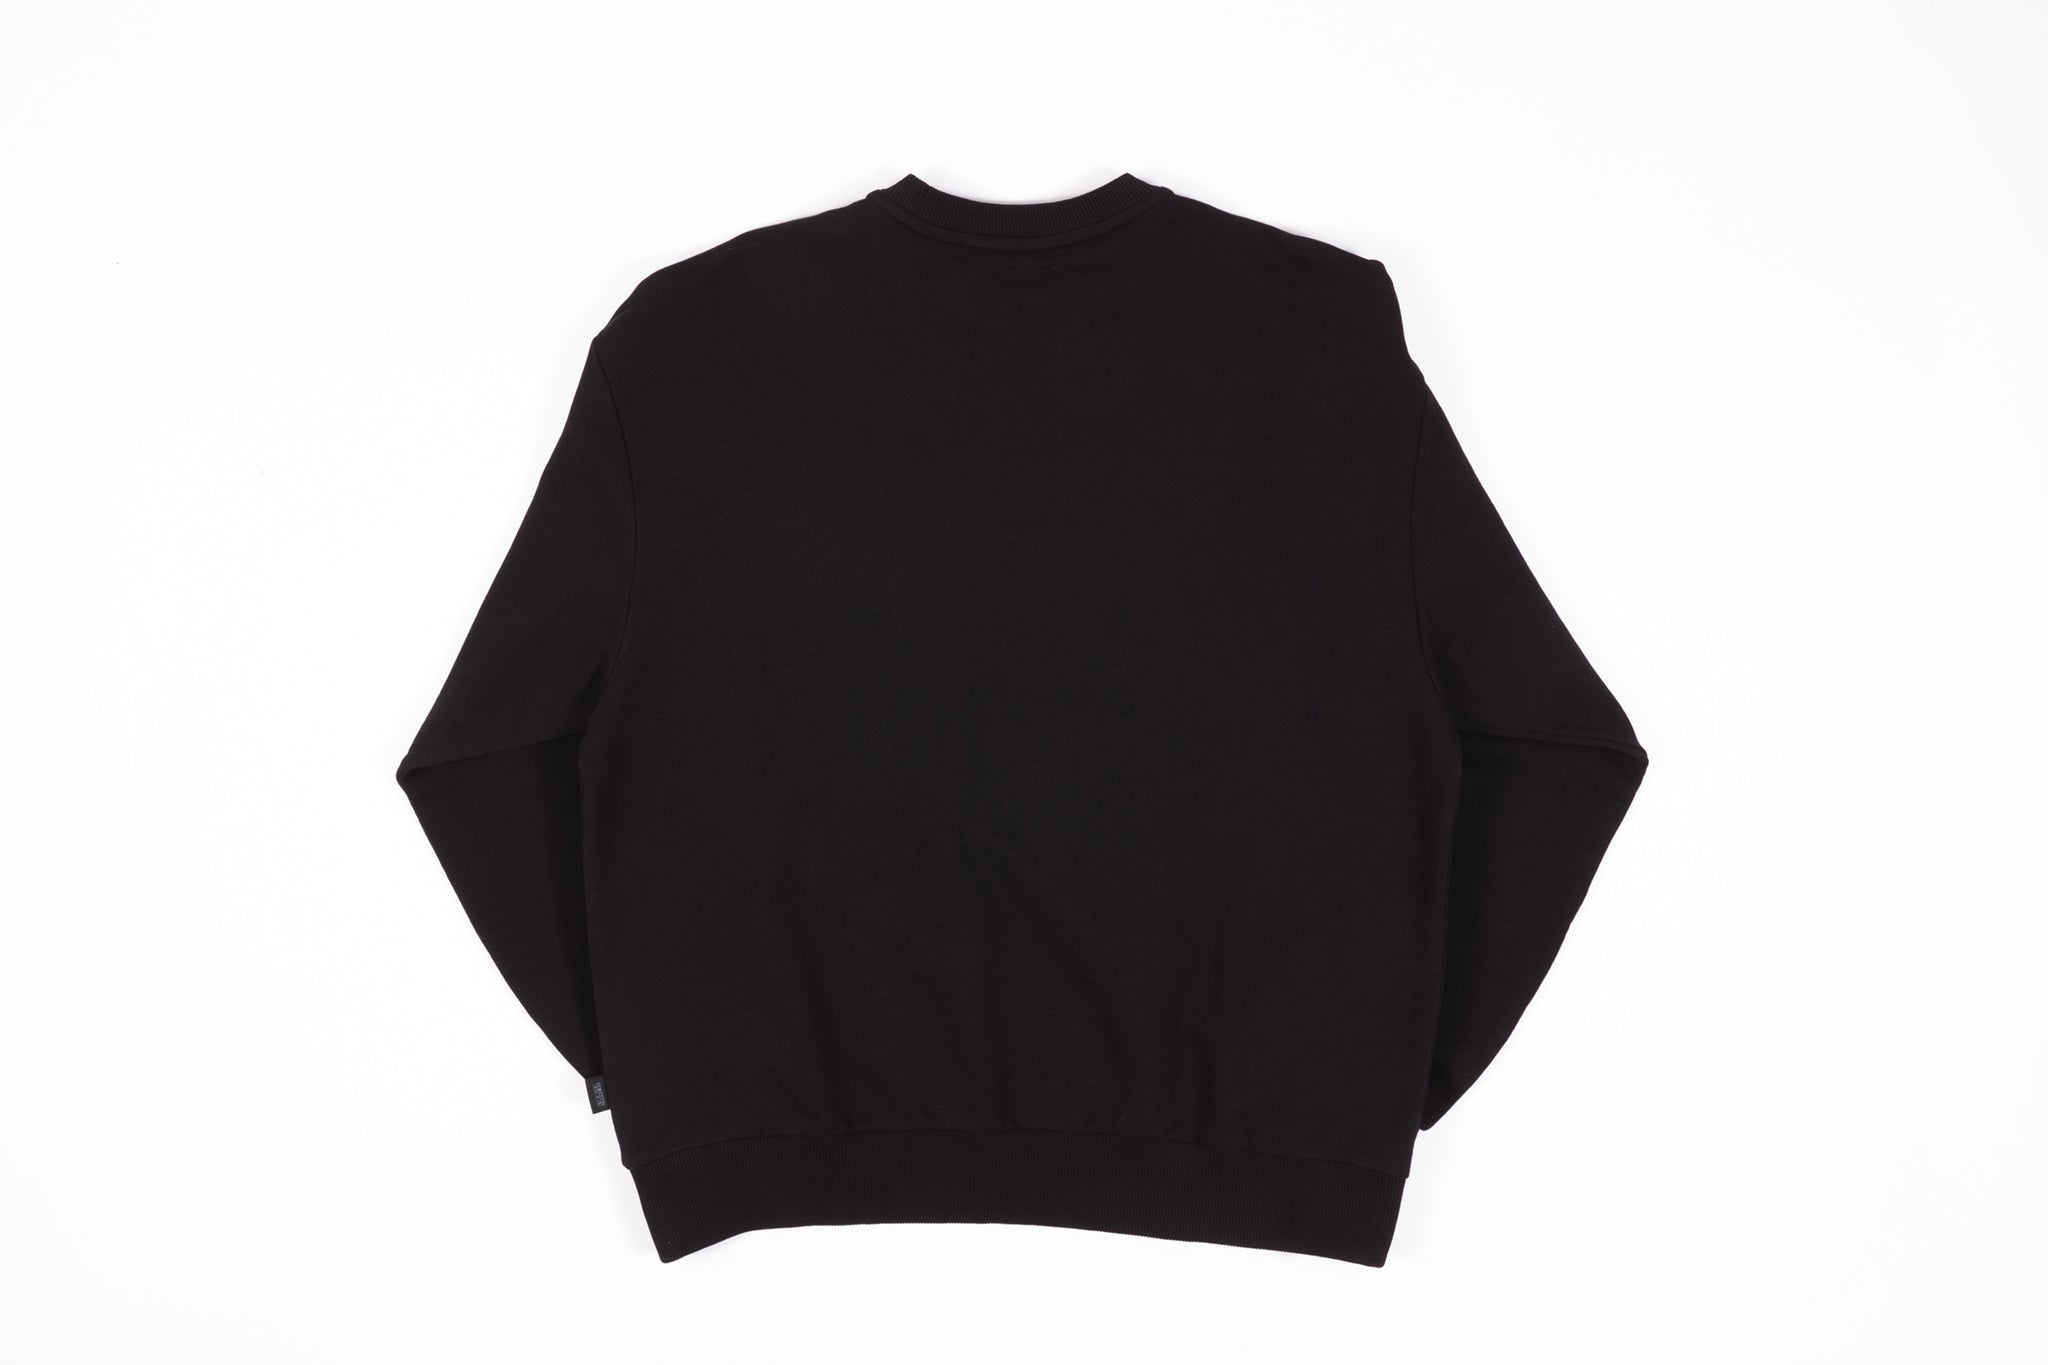 NAPA BY MARTINE ROSE B-AROSA CREWNECK SWEATSHIRT